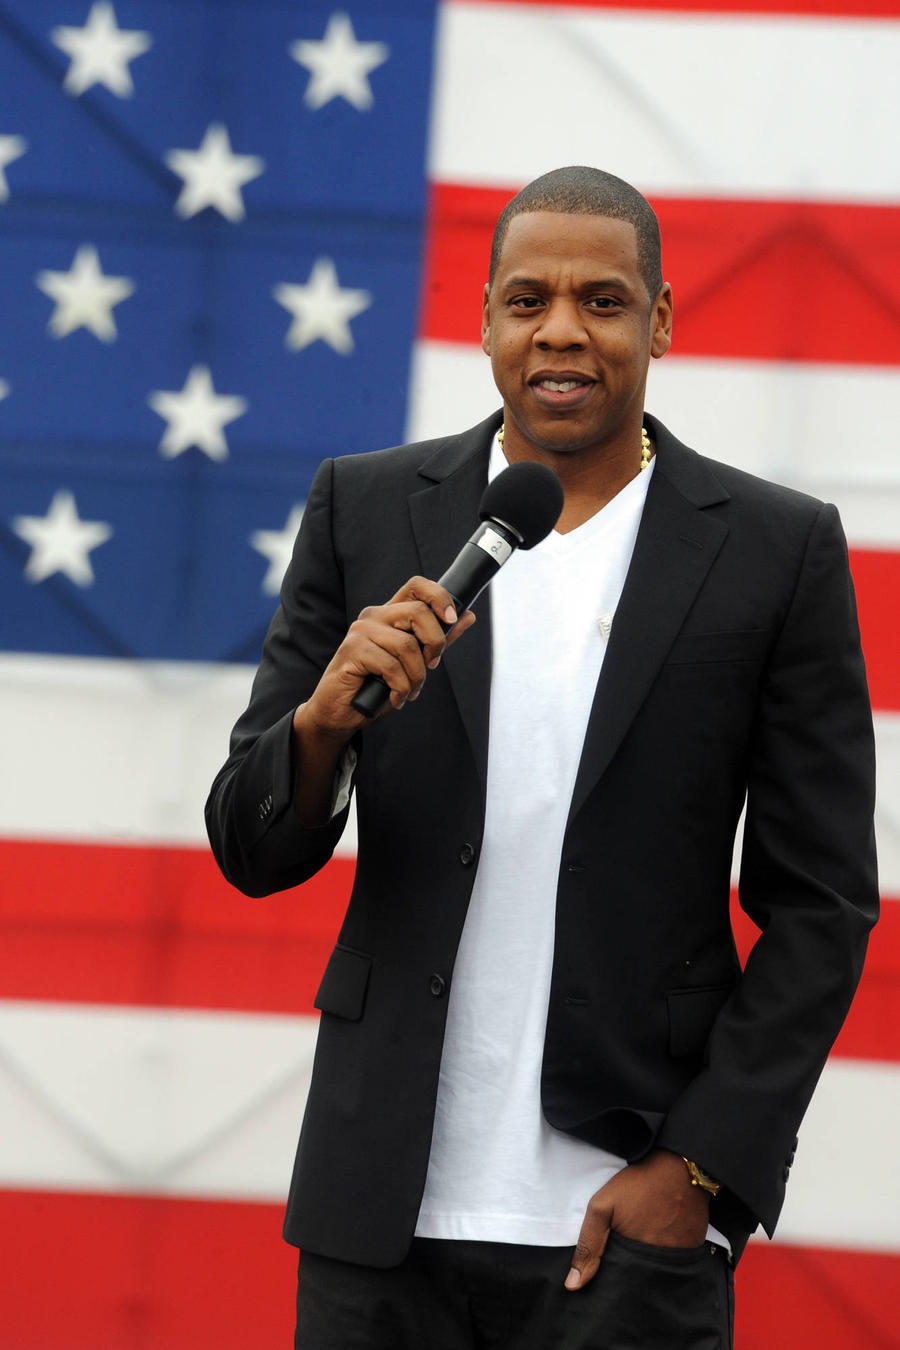 Jay Z Holding Concert In Ohio For Hillary Clinton